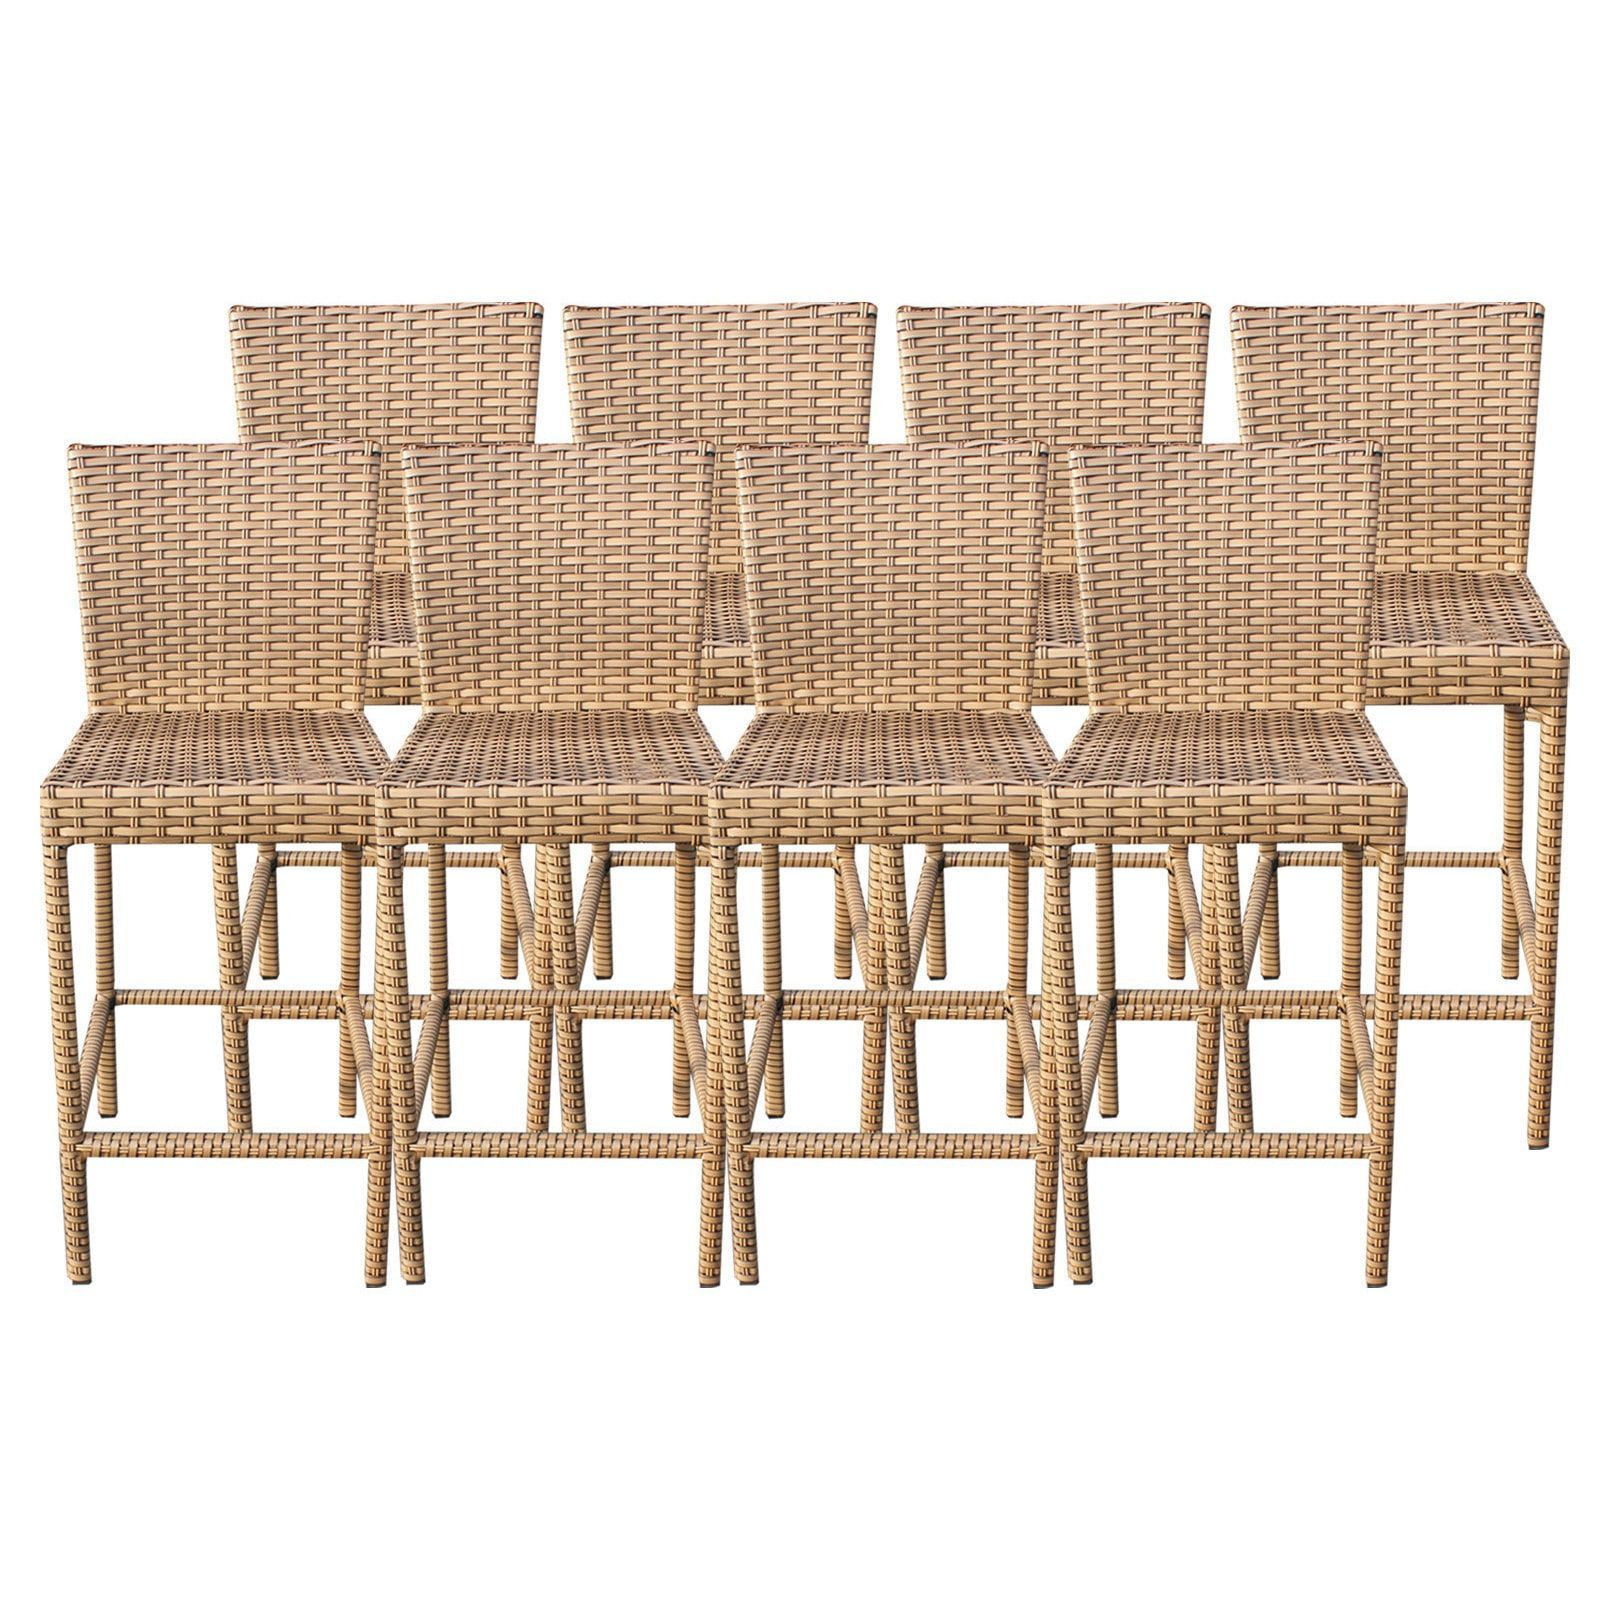 Bayou Outdoor Patio Wicker Barstools with Back